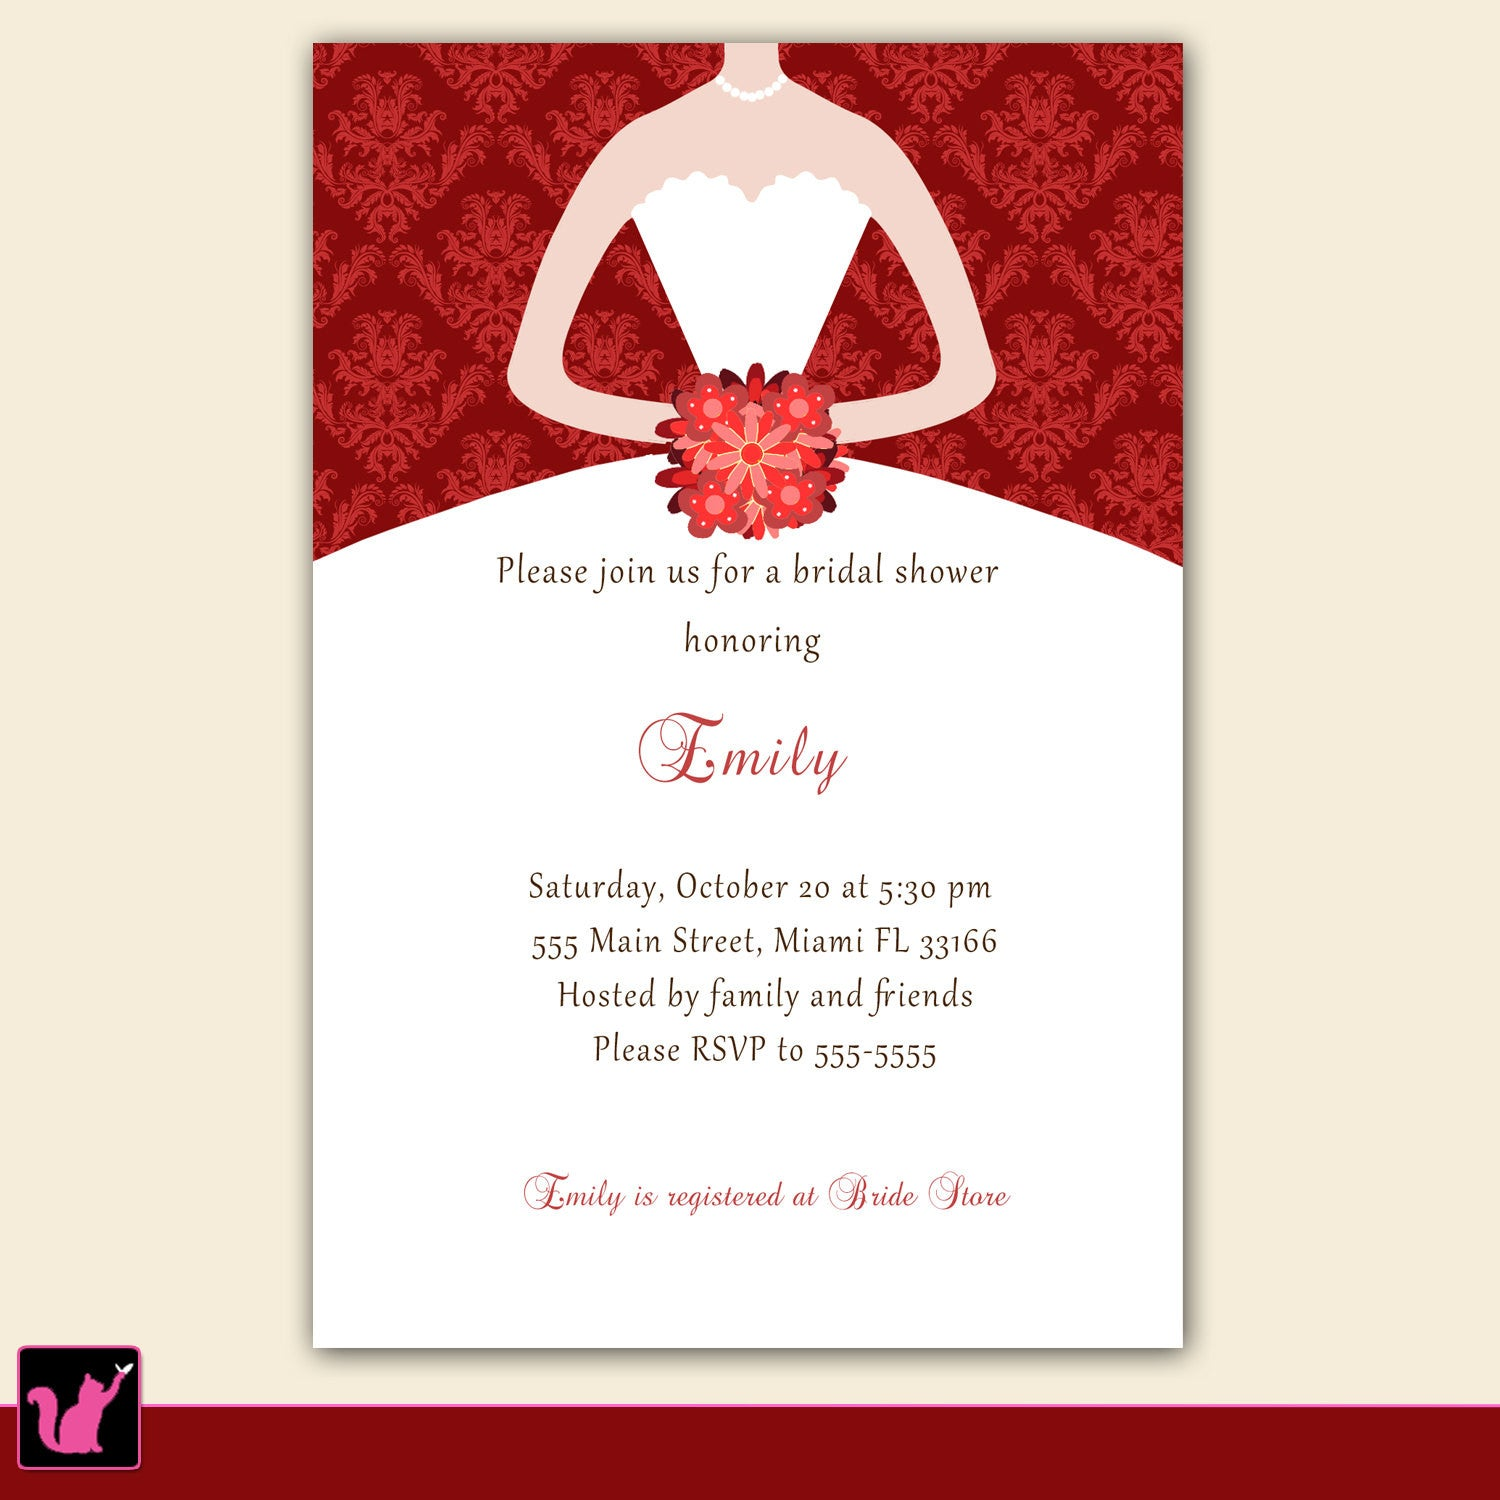 Dress Invitation Bridal Shower Sweet 16 Red Damask – Pink The Cat